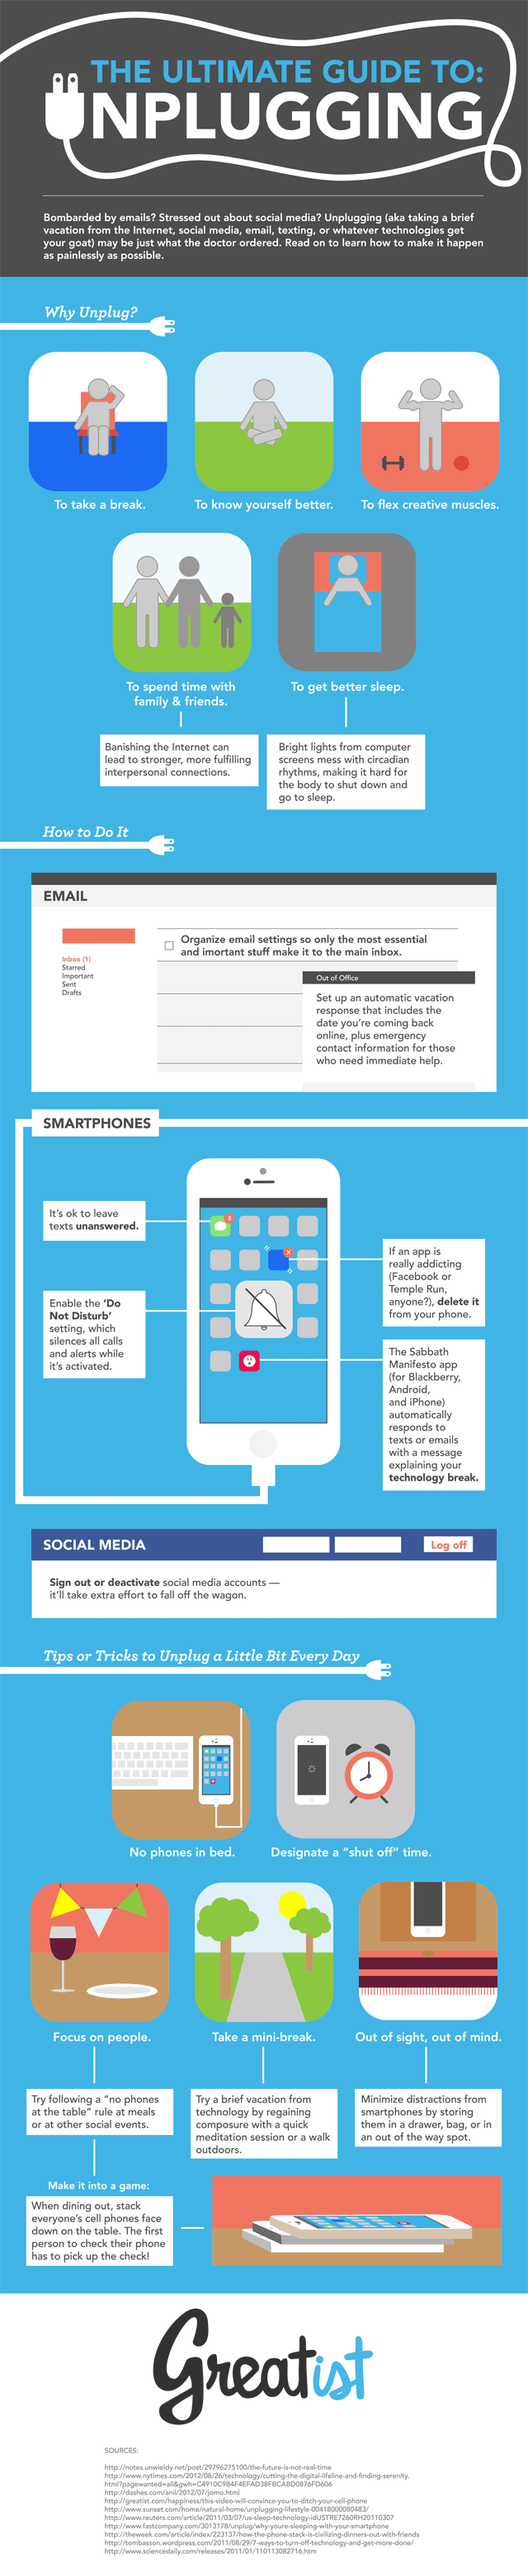 Ultimate Guide to Unplugging Infographic